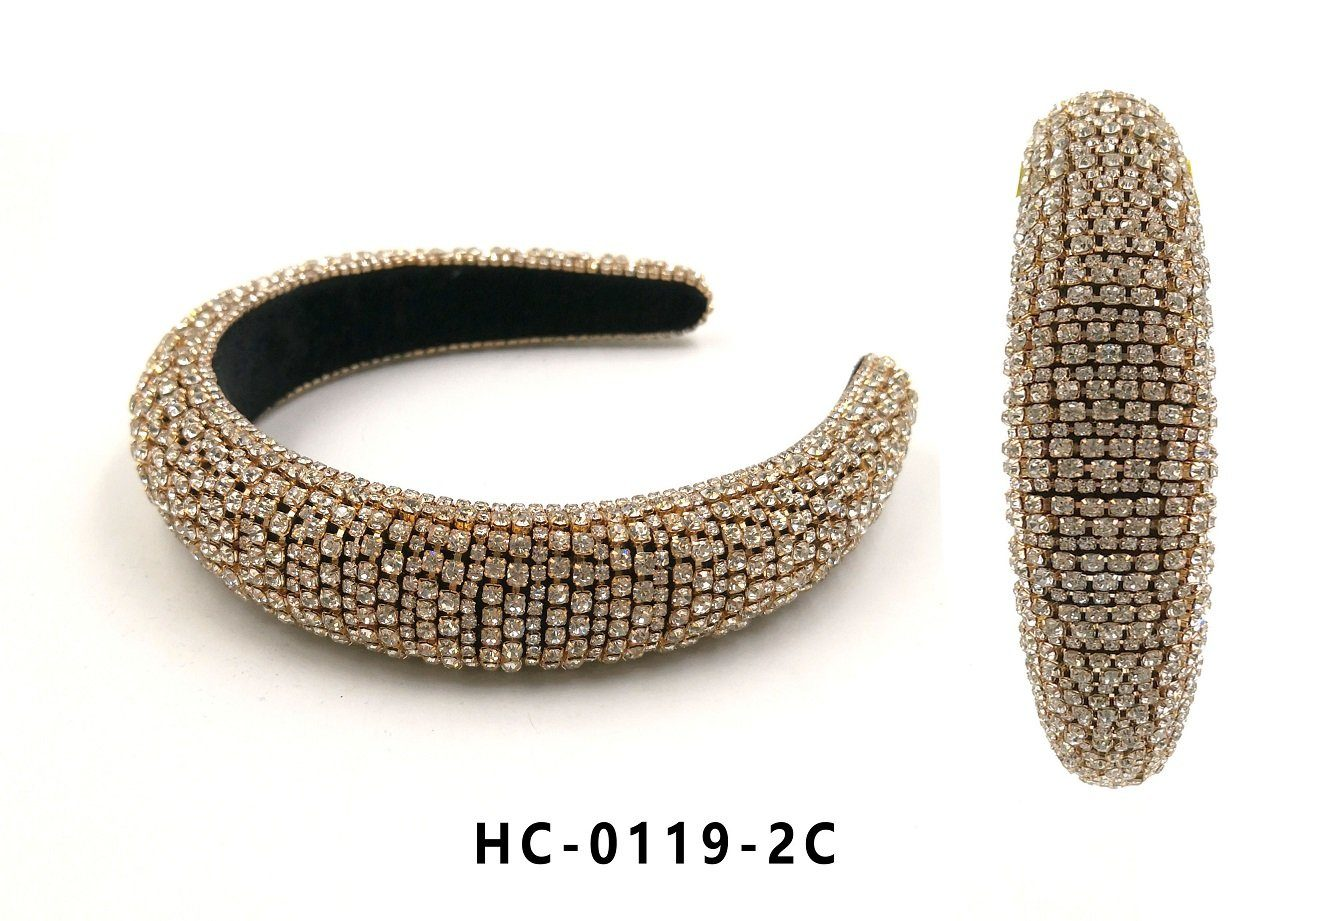 wholesale-fashion-headband-rhinestone-HC01192C